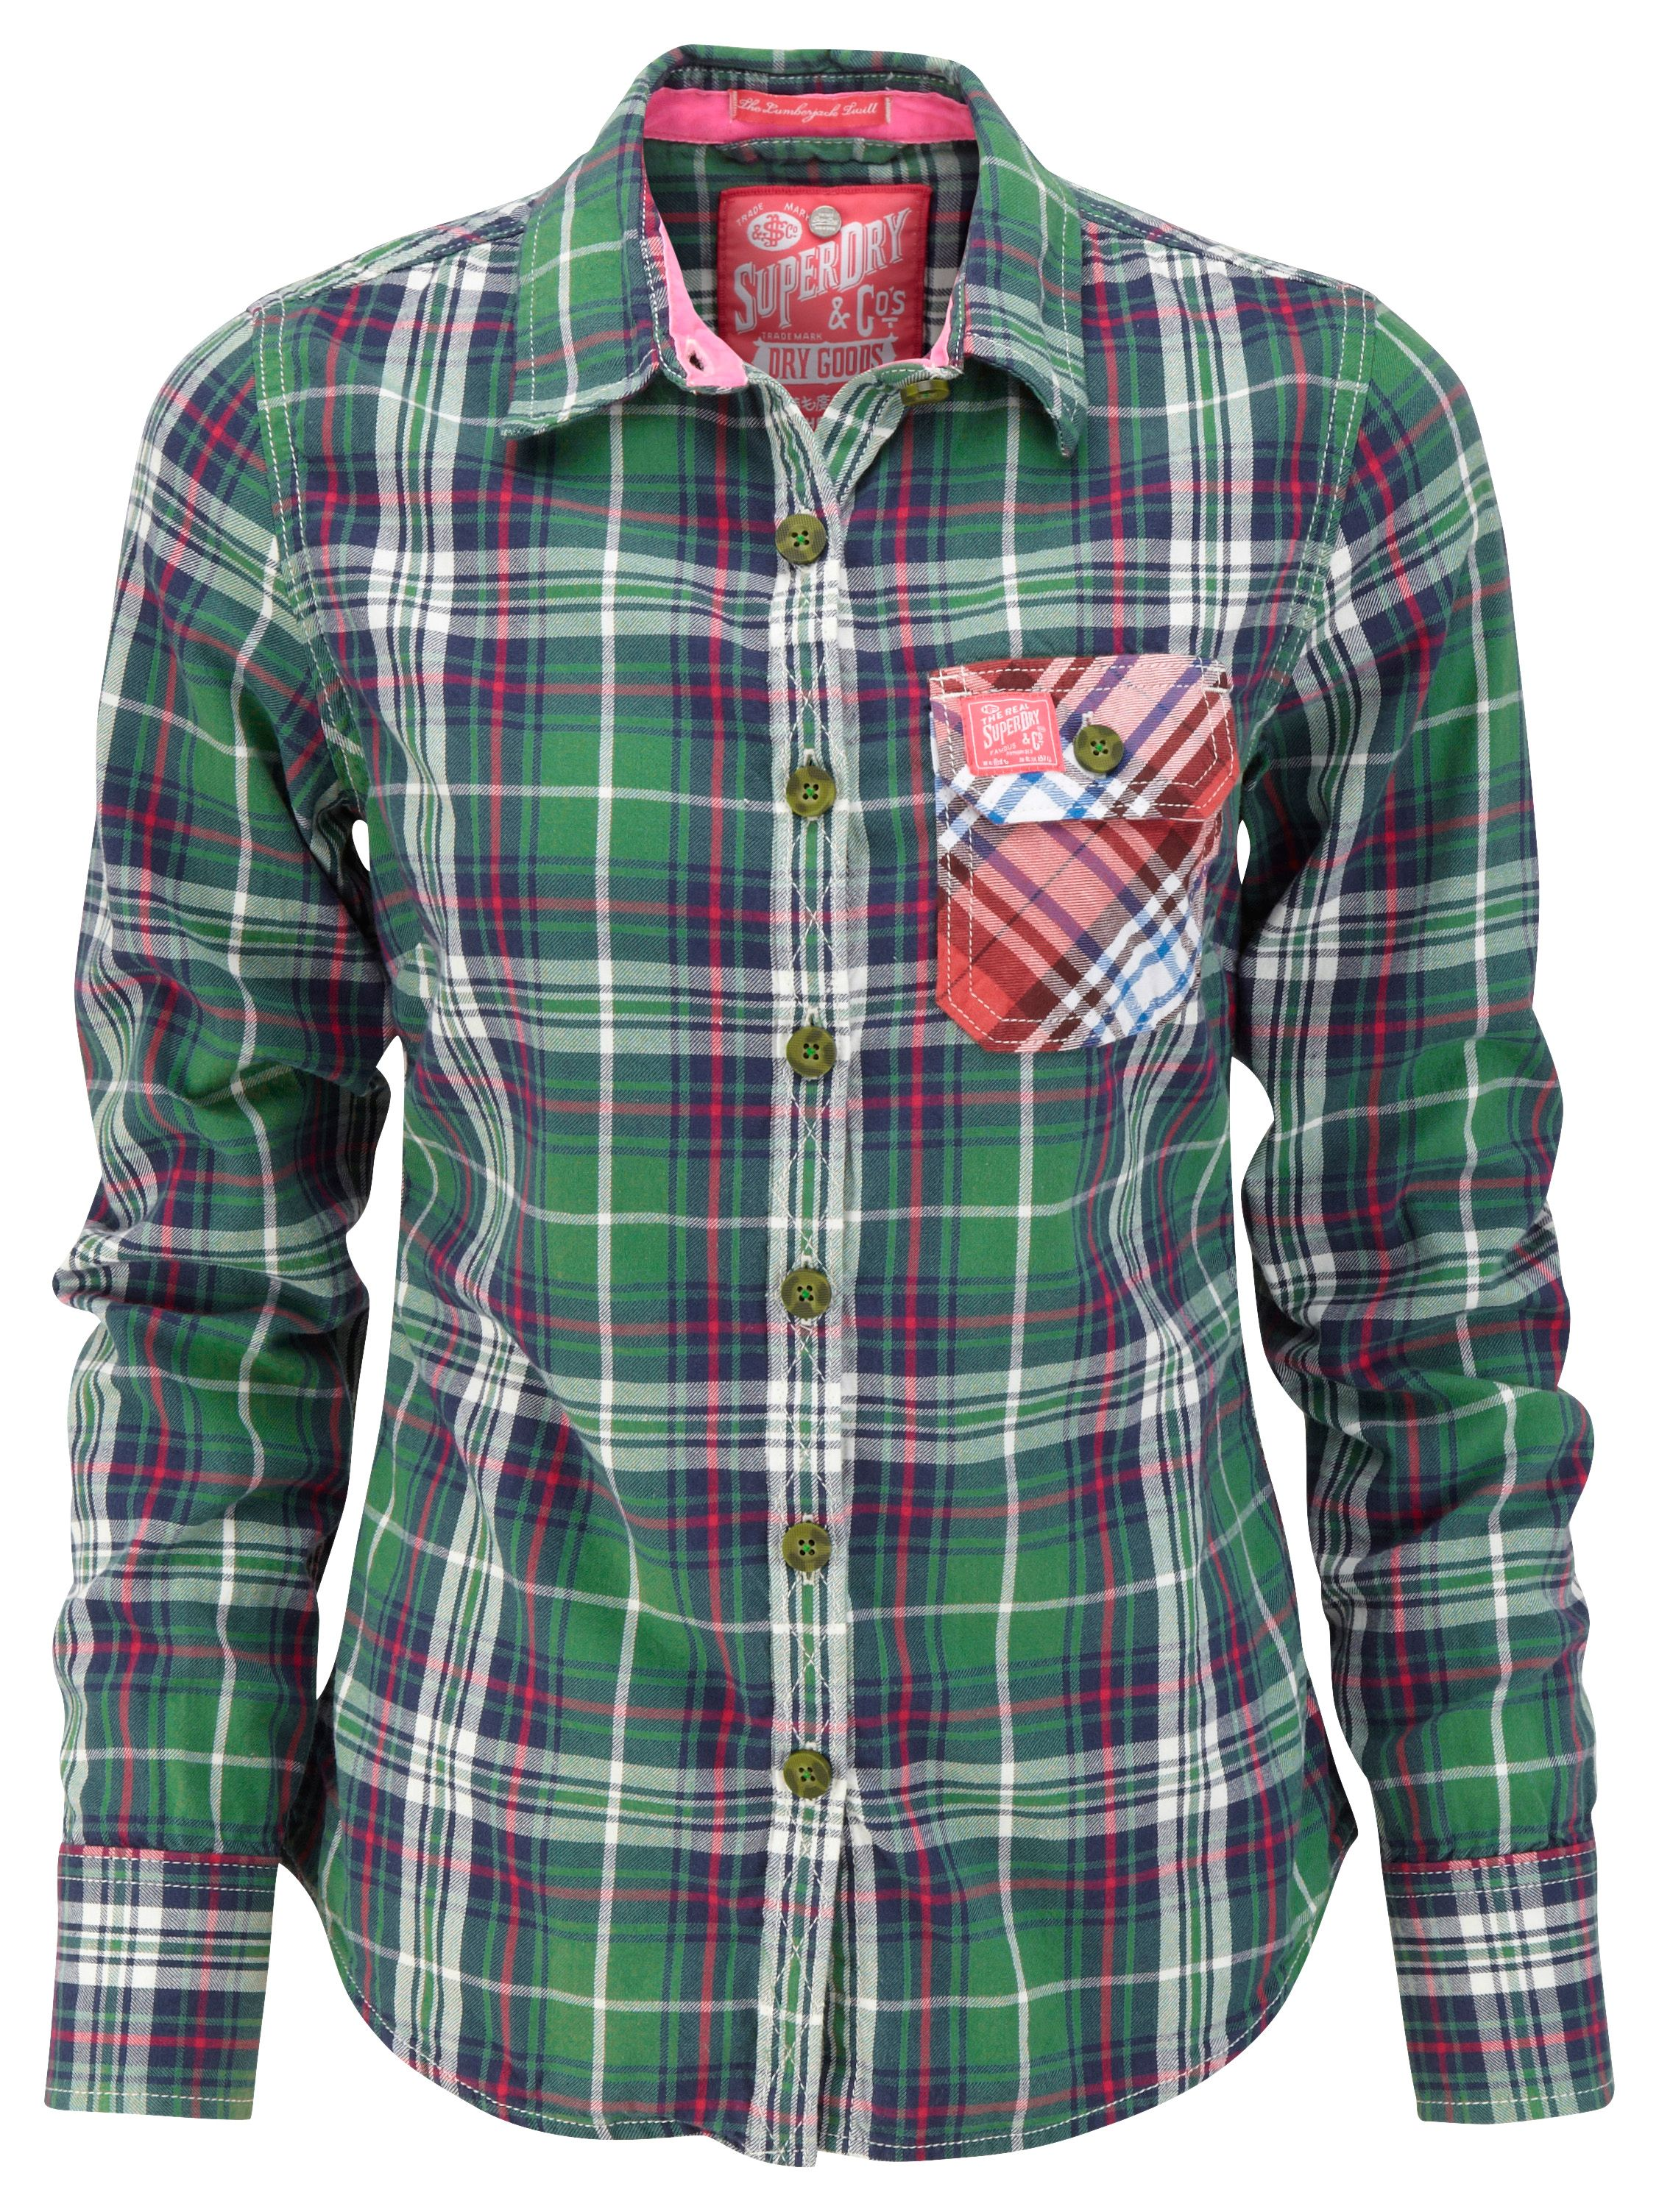 Lumberjack pocket shirt